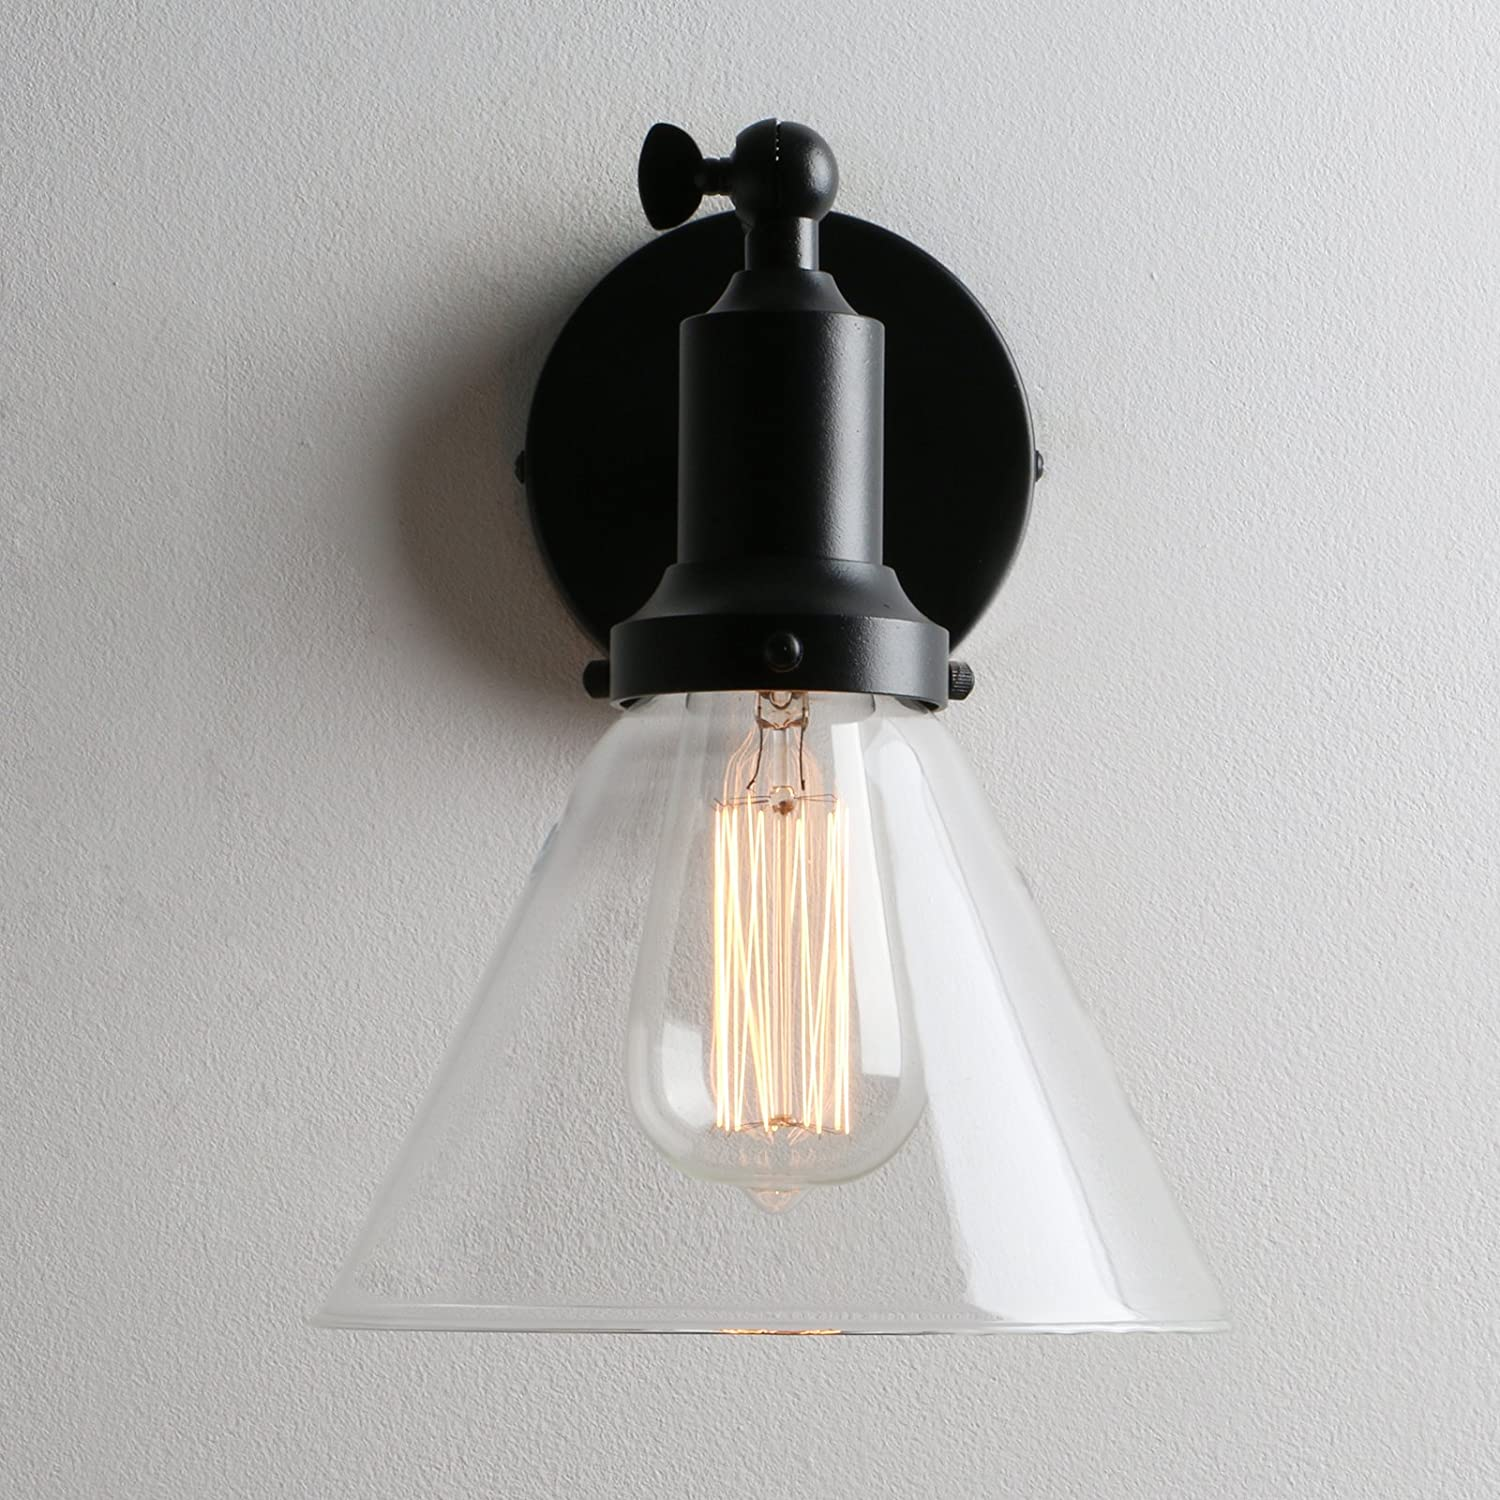 Shop Wall Mount Single Sconce from Amazon on Openhaus